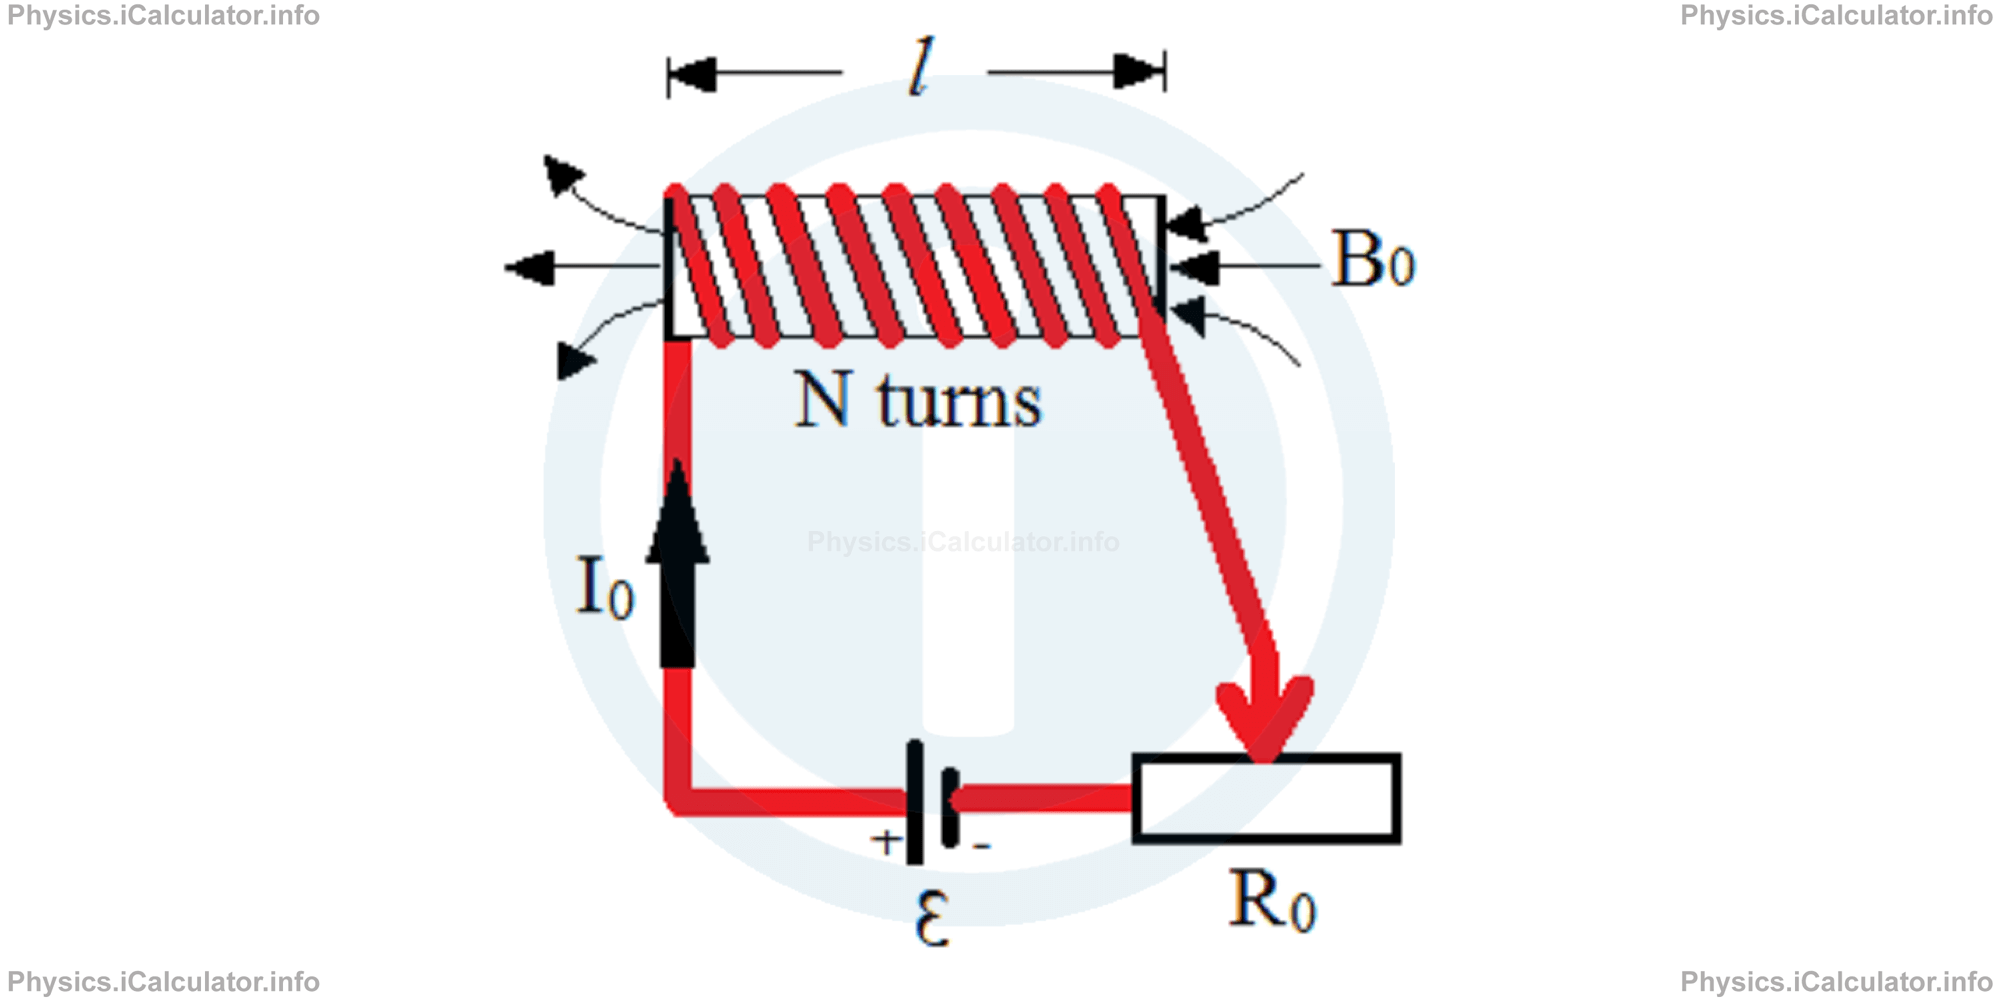 Physics Tutorials: This image provides visual information for the physics tutorial Inductance and Self-Induction